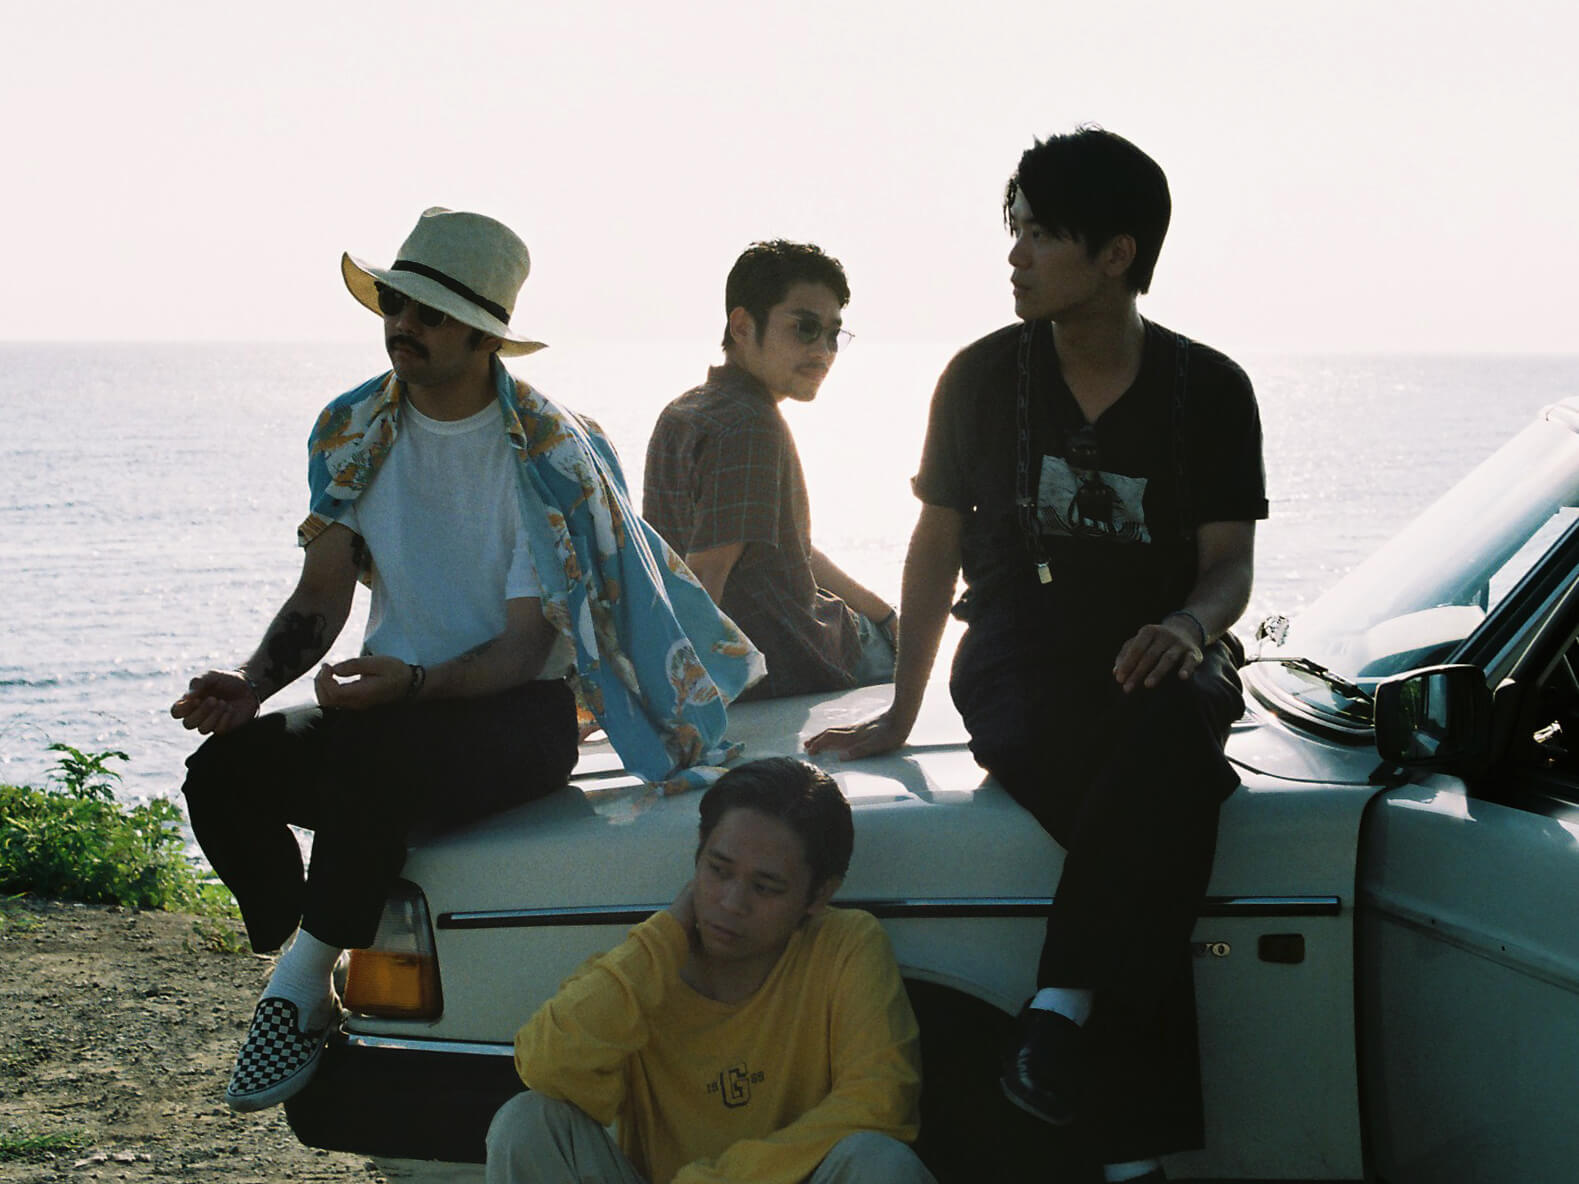 Yogee New Waves、「SPRING CAVE e.p」のアナログ盤がリリース決定